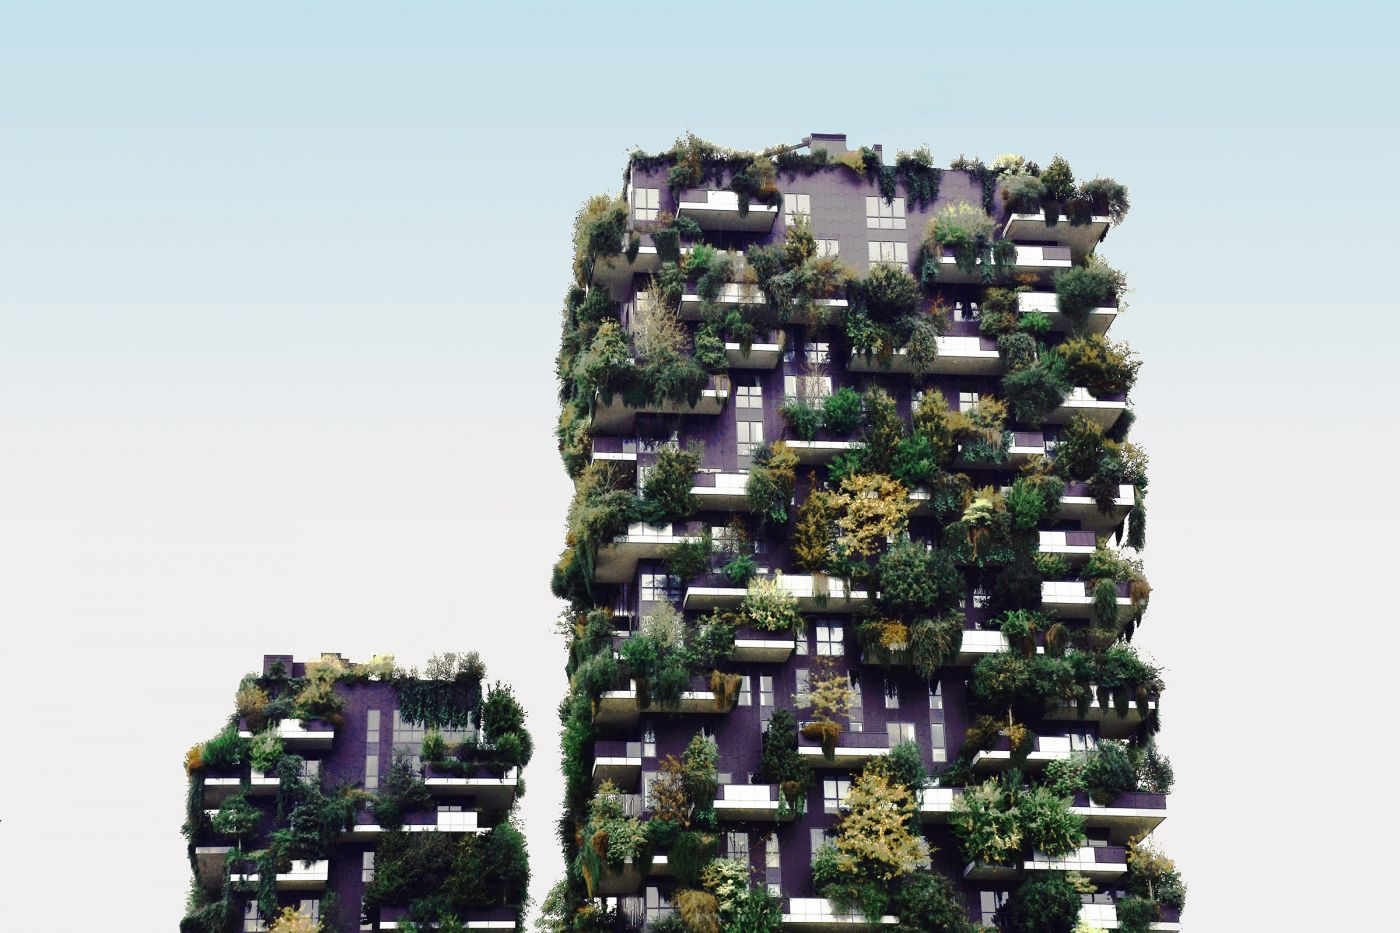 A sustainable hotel with plants on the balconies.